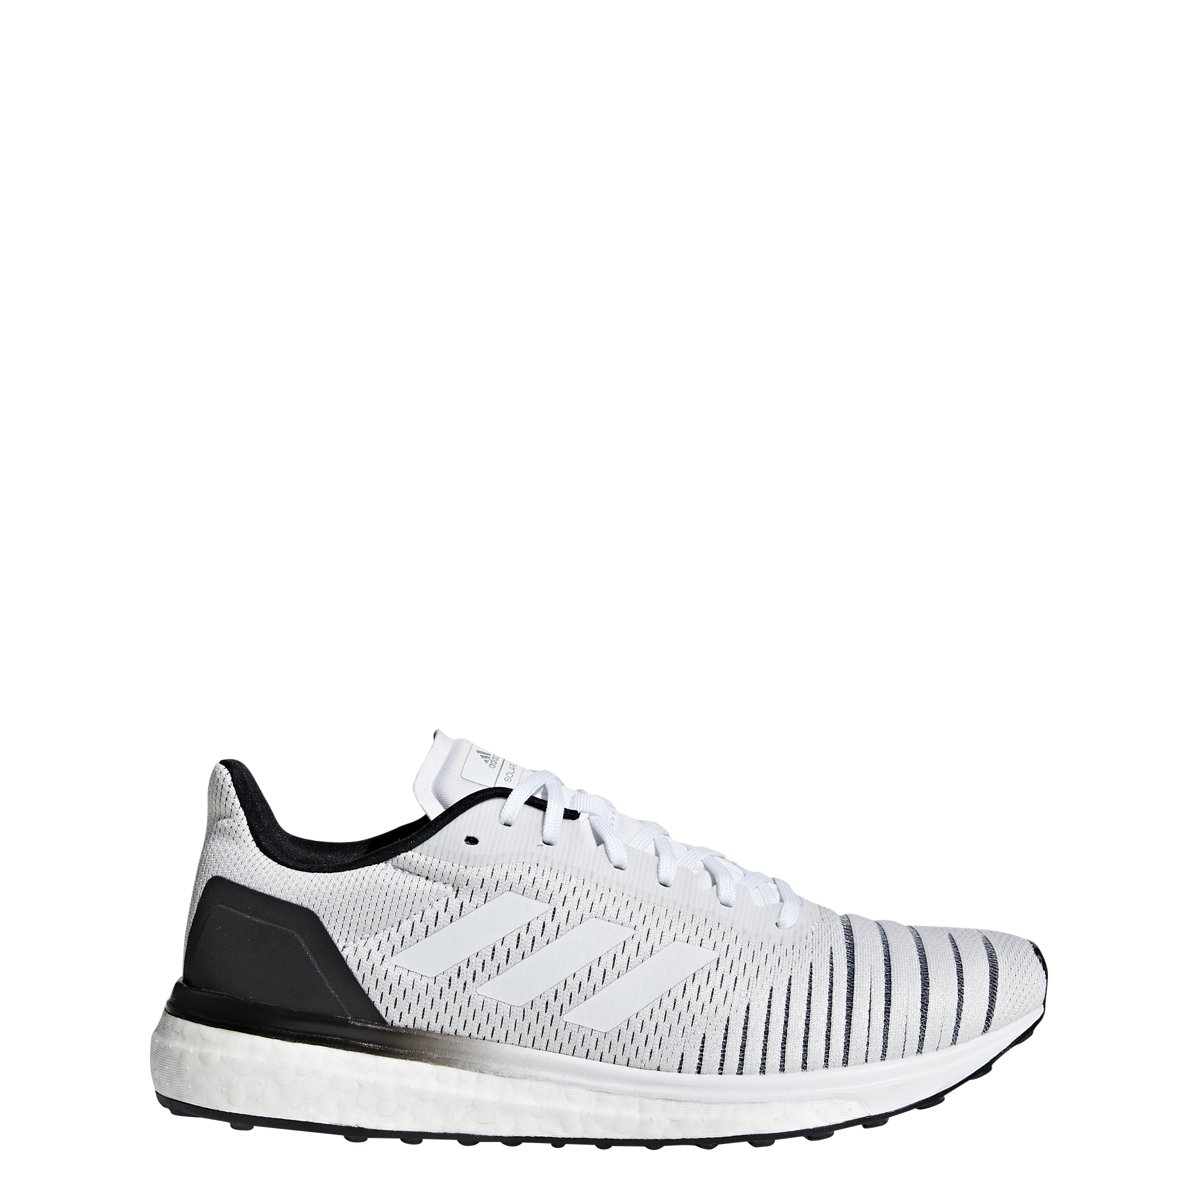 adidas Women's Solar Drive Running Shoe White/Black Size 6.5 M US